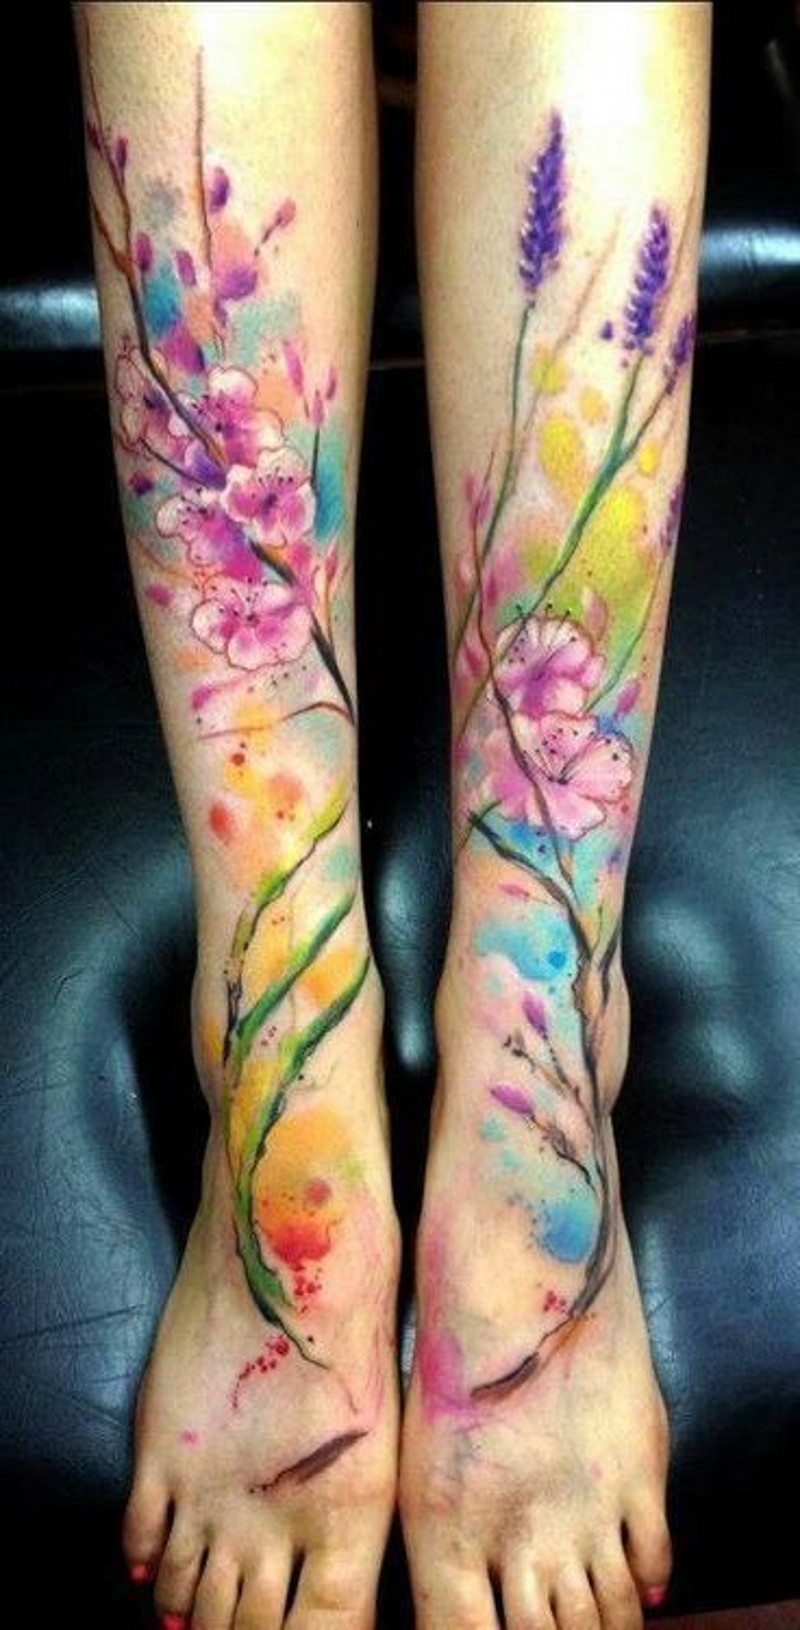 Bright colored flowers and pink blossoms on branch watercolor tattoo on both legs